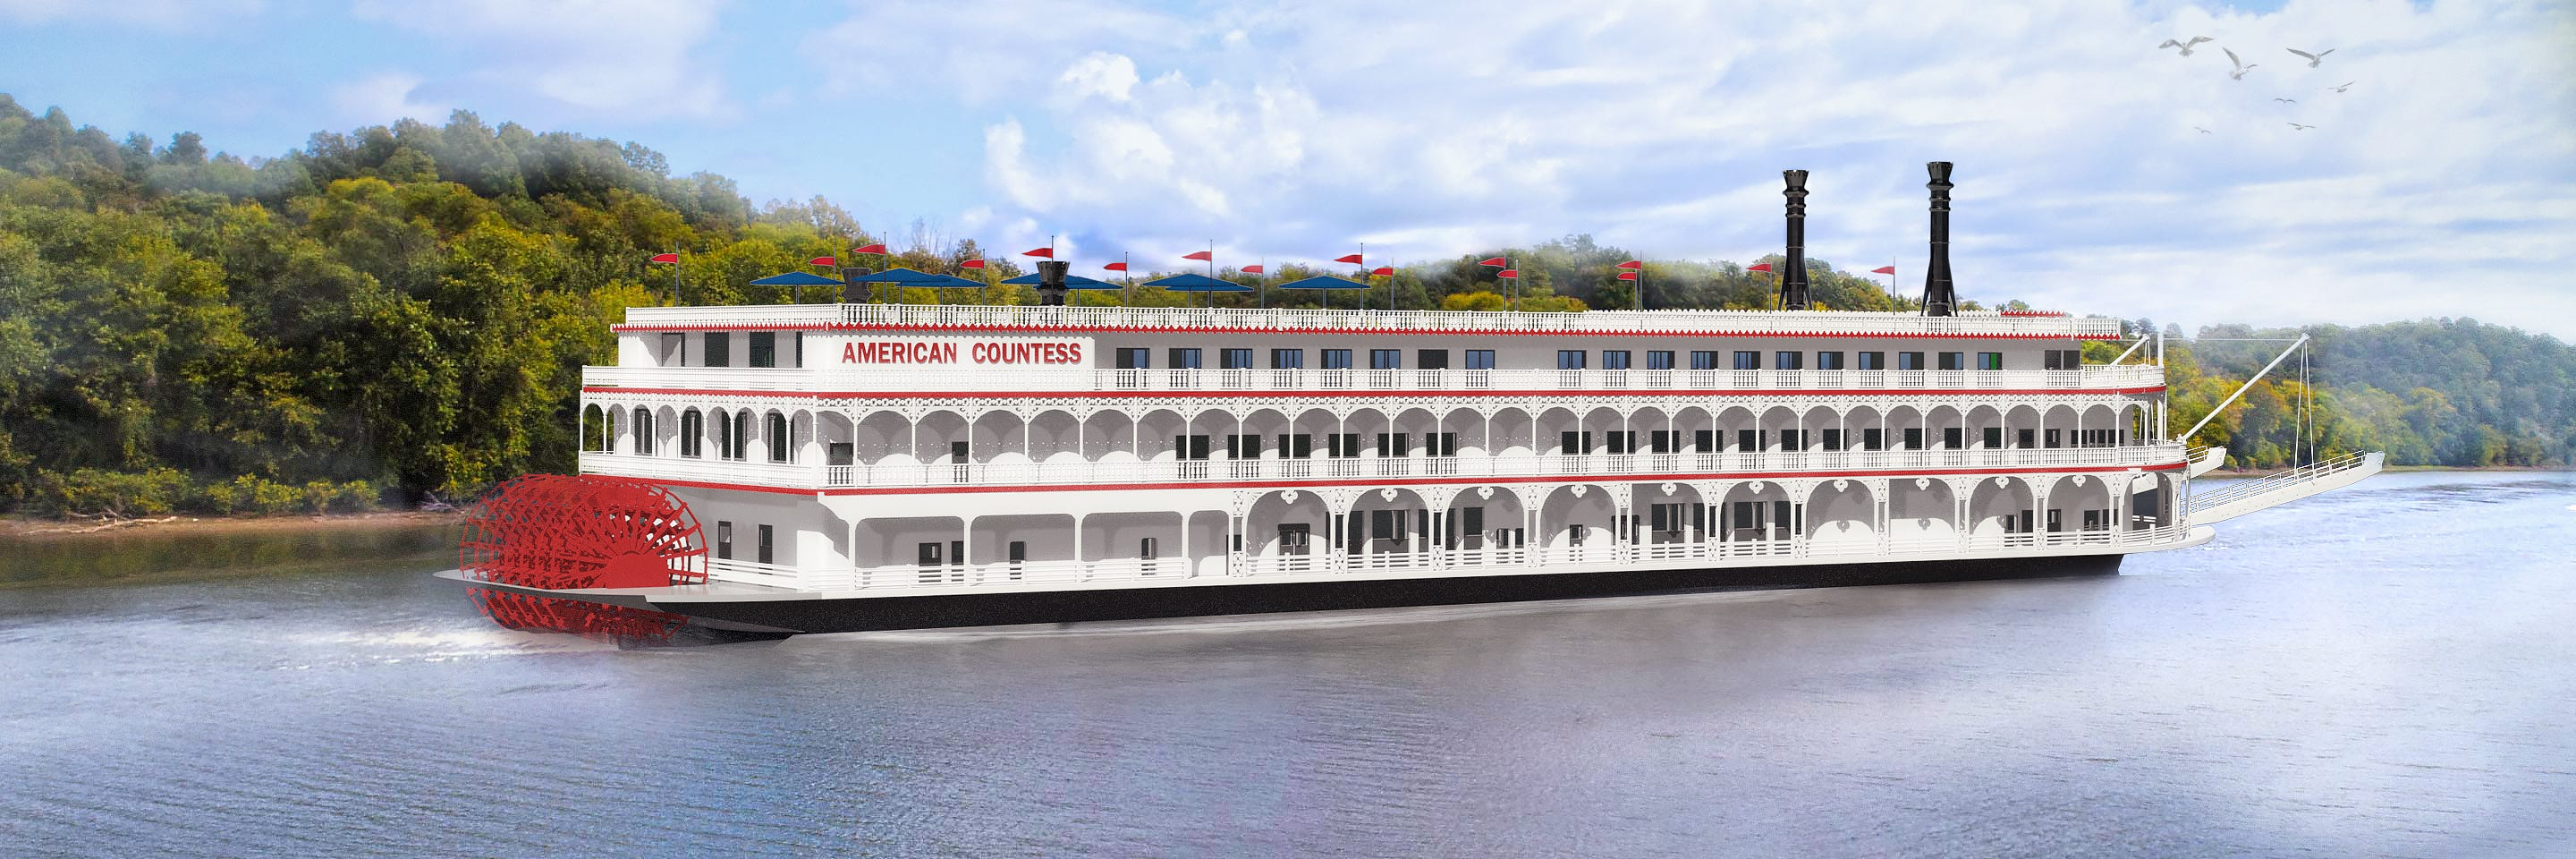 American Queen Steamboat Company unveils plans for new paddlewheeler   USA Today